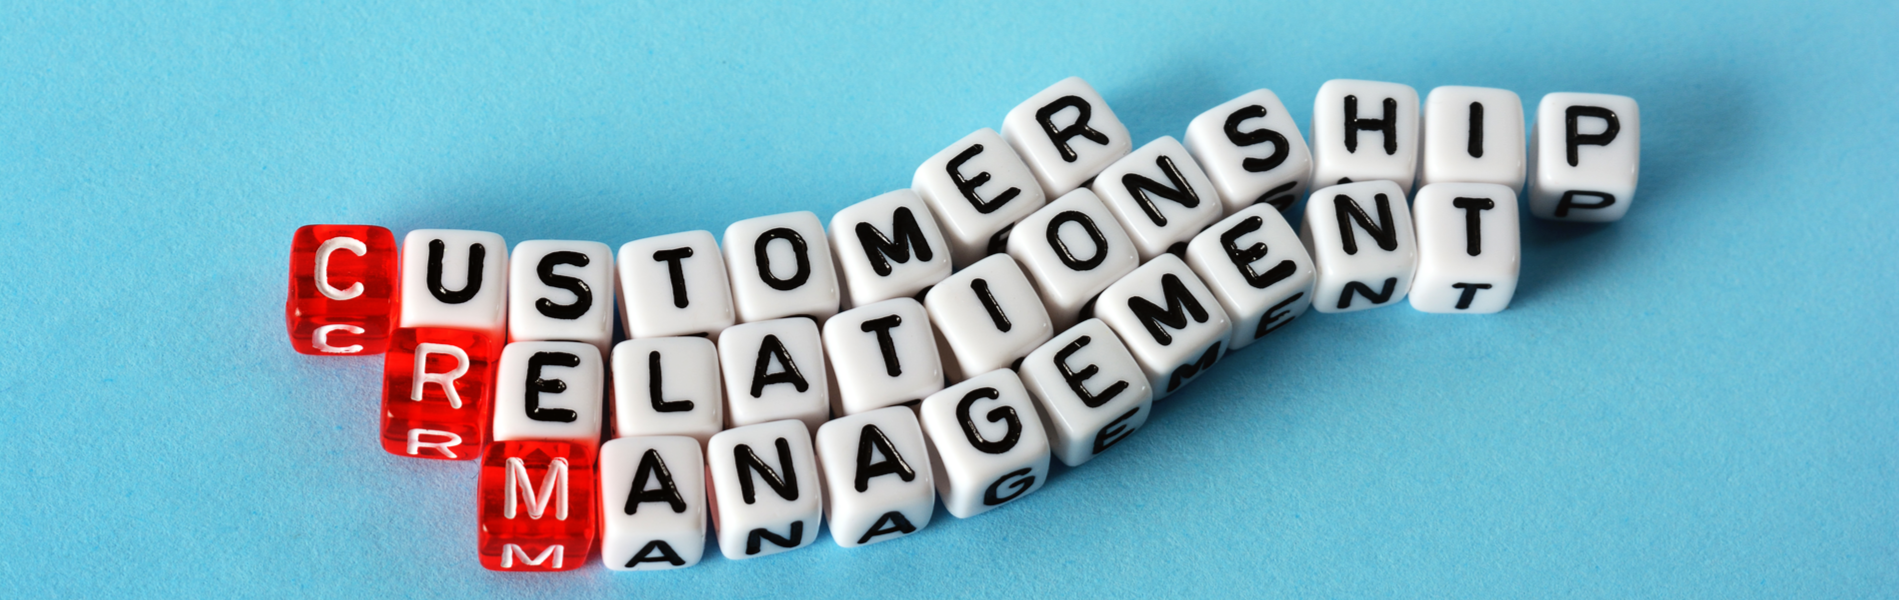 Customer Relationship Management CRM Benefits Banner.png